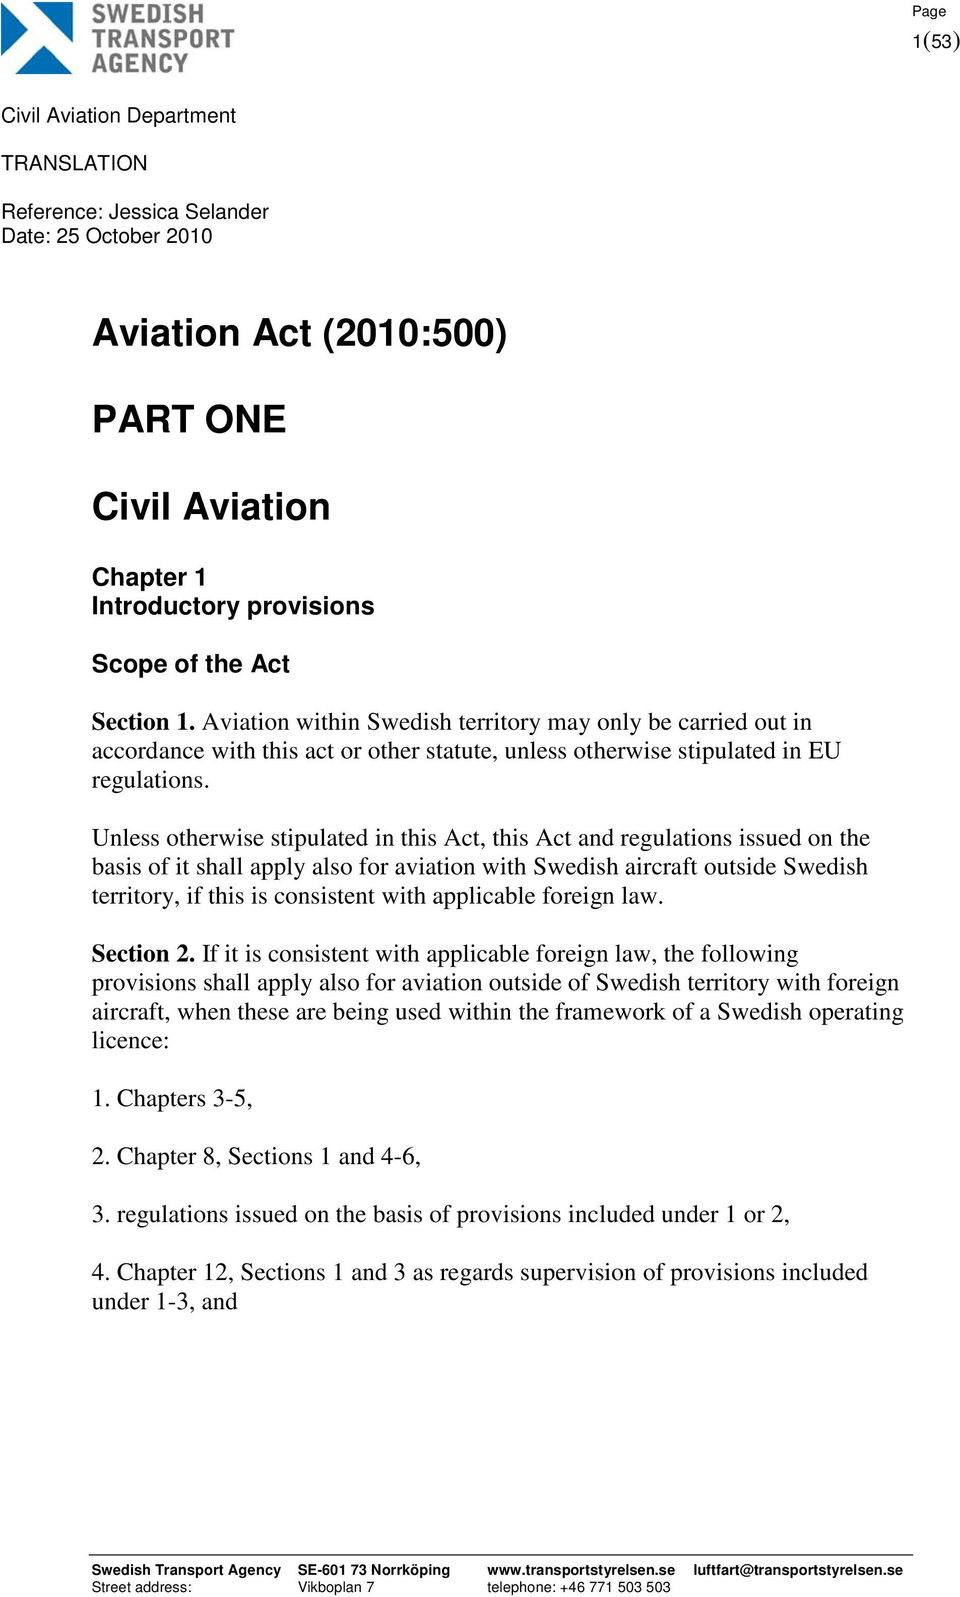 Unless otherwise stipulated in this Act, this Act and regulations issued on the basis of it shall apply also for aviation with Swedish aircraft outside Swedish territory, if this is consistent with